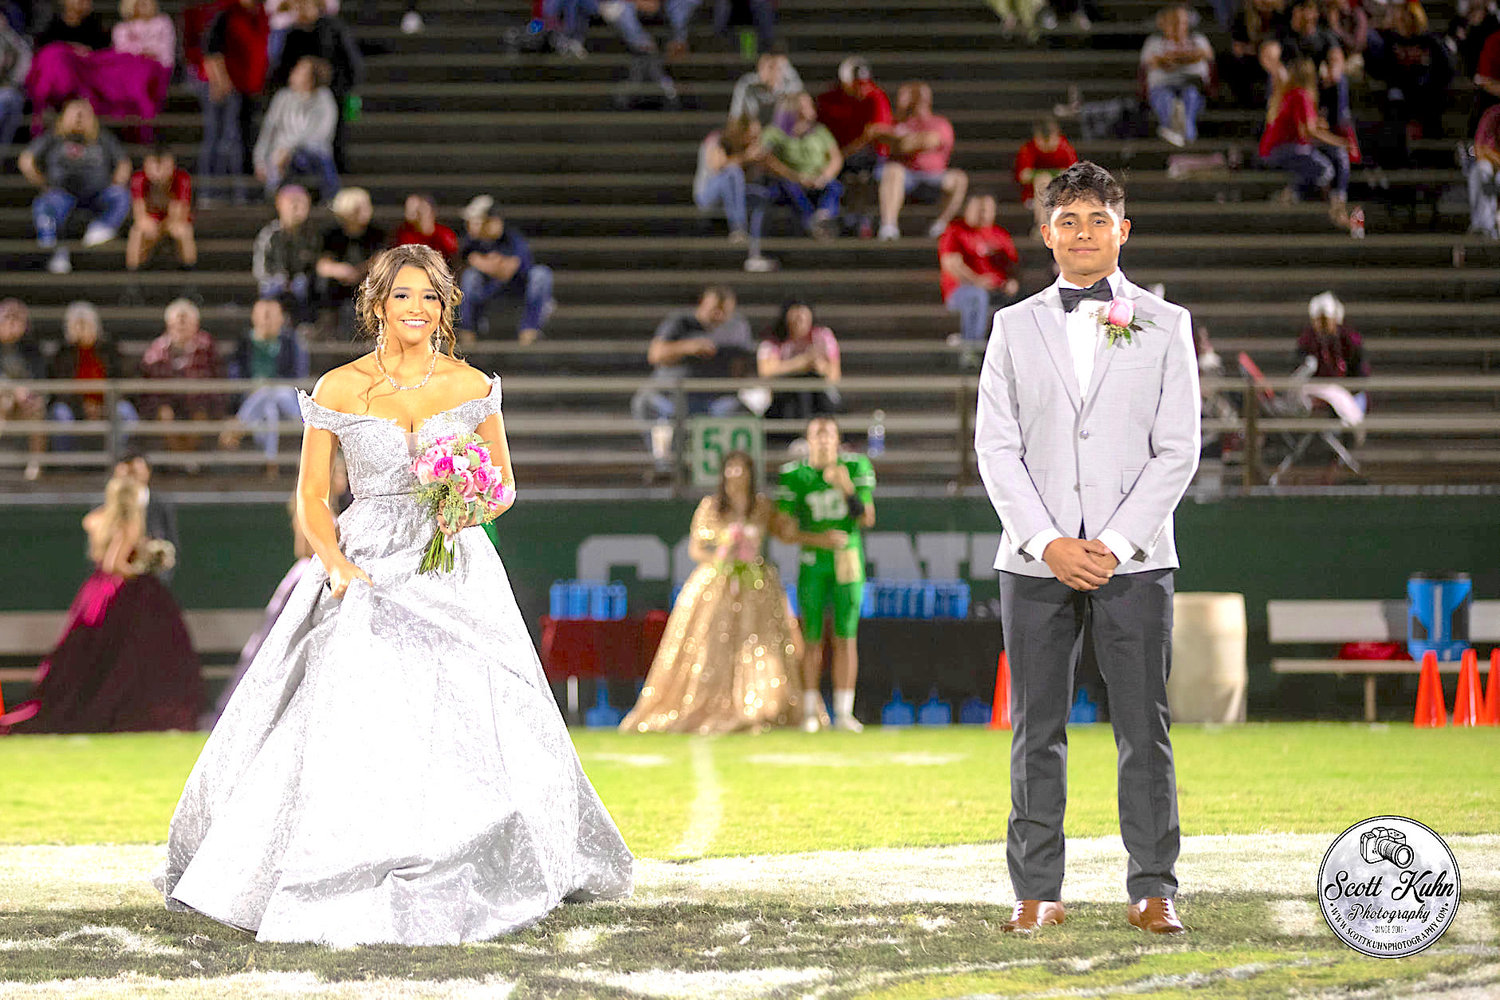 Sophomore Princess Mia Lowery and escort Christopher Hernandez